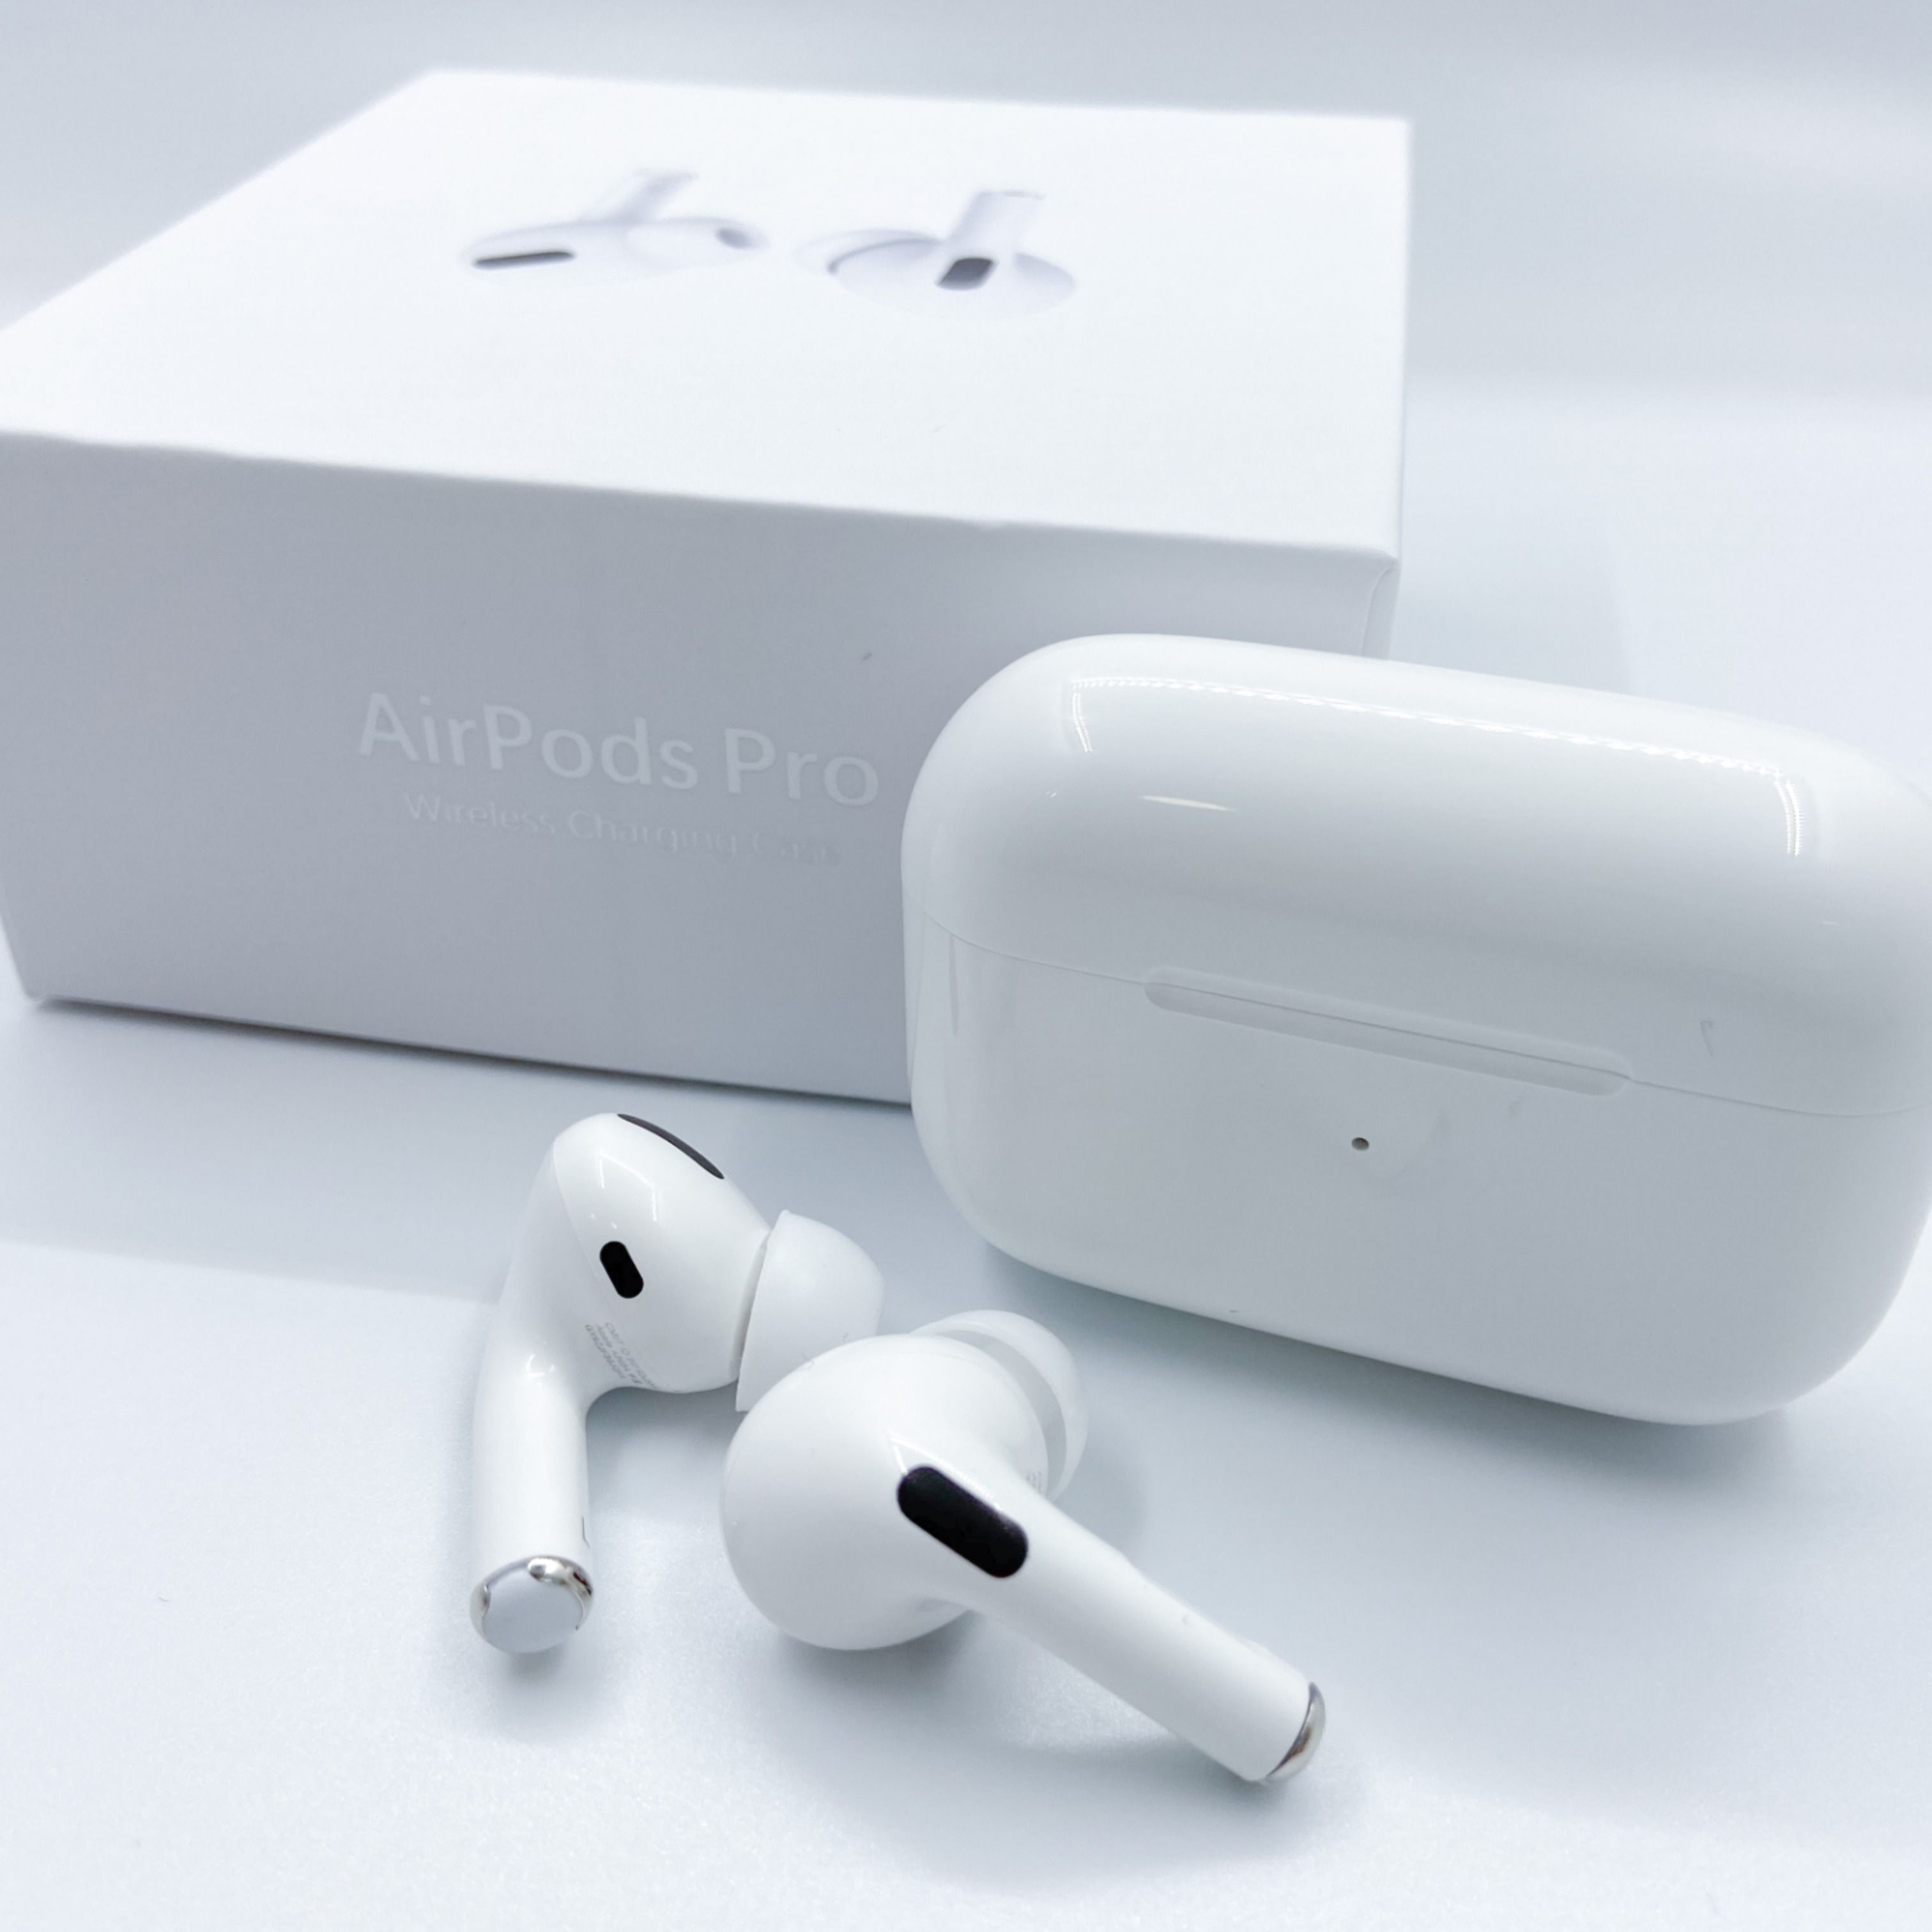 Airpods 2 In 2020 Earbud Headphones Apple Products Apple